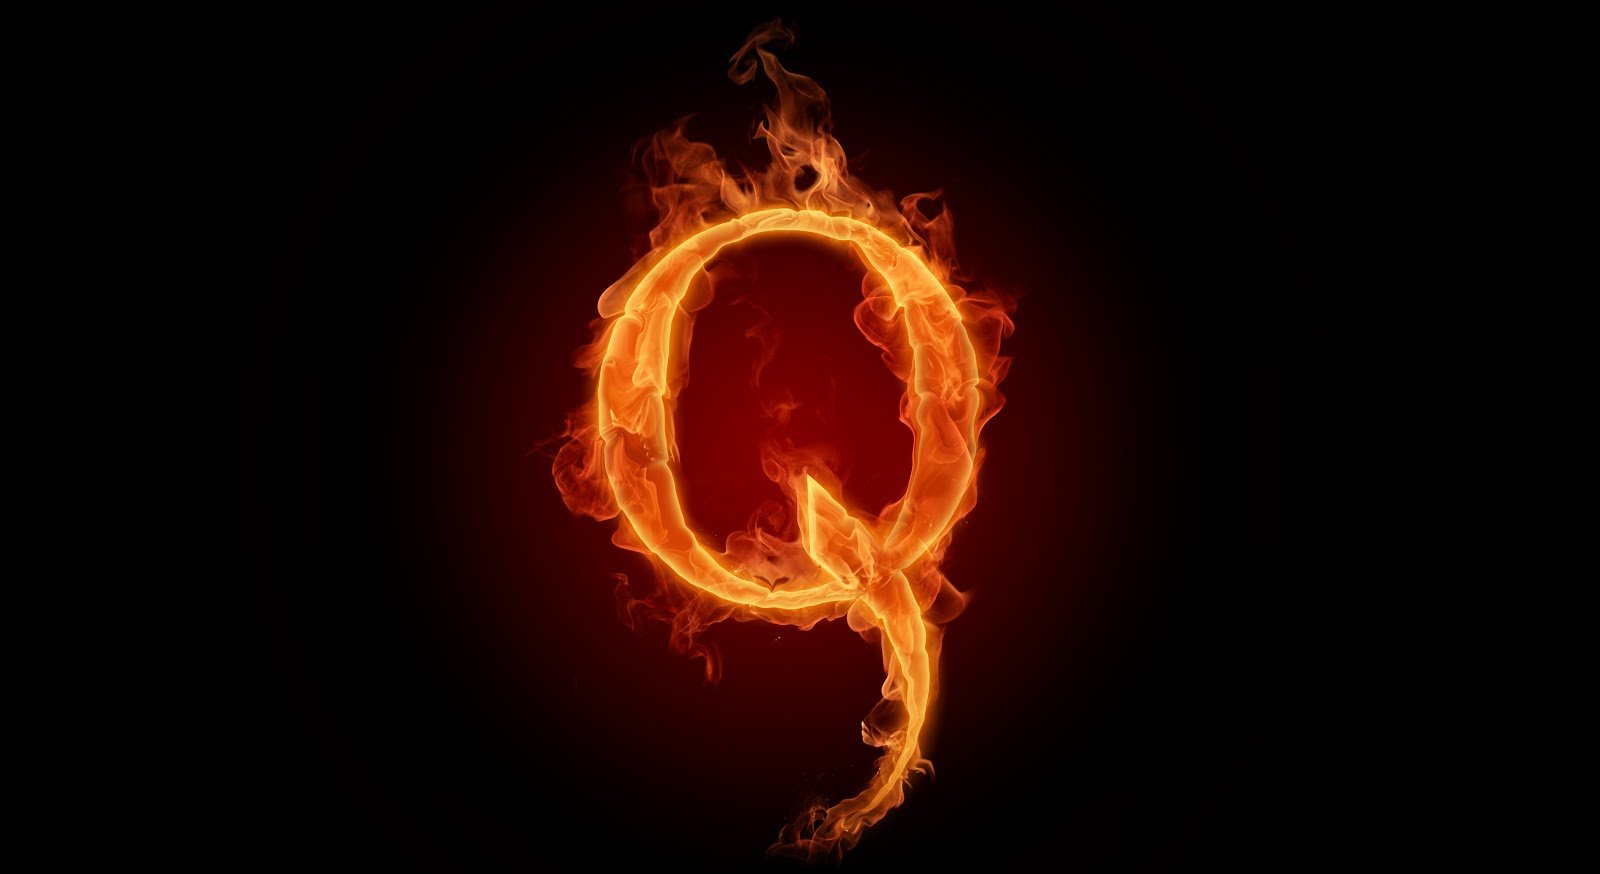 Discerning the mystery q anon updates for june 17 2018 q anon updates for june 17 2018 stopboris Images